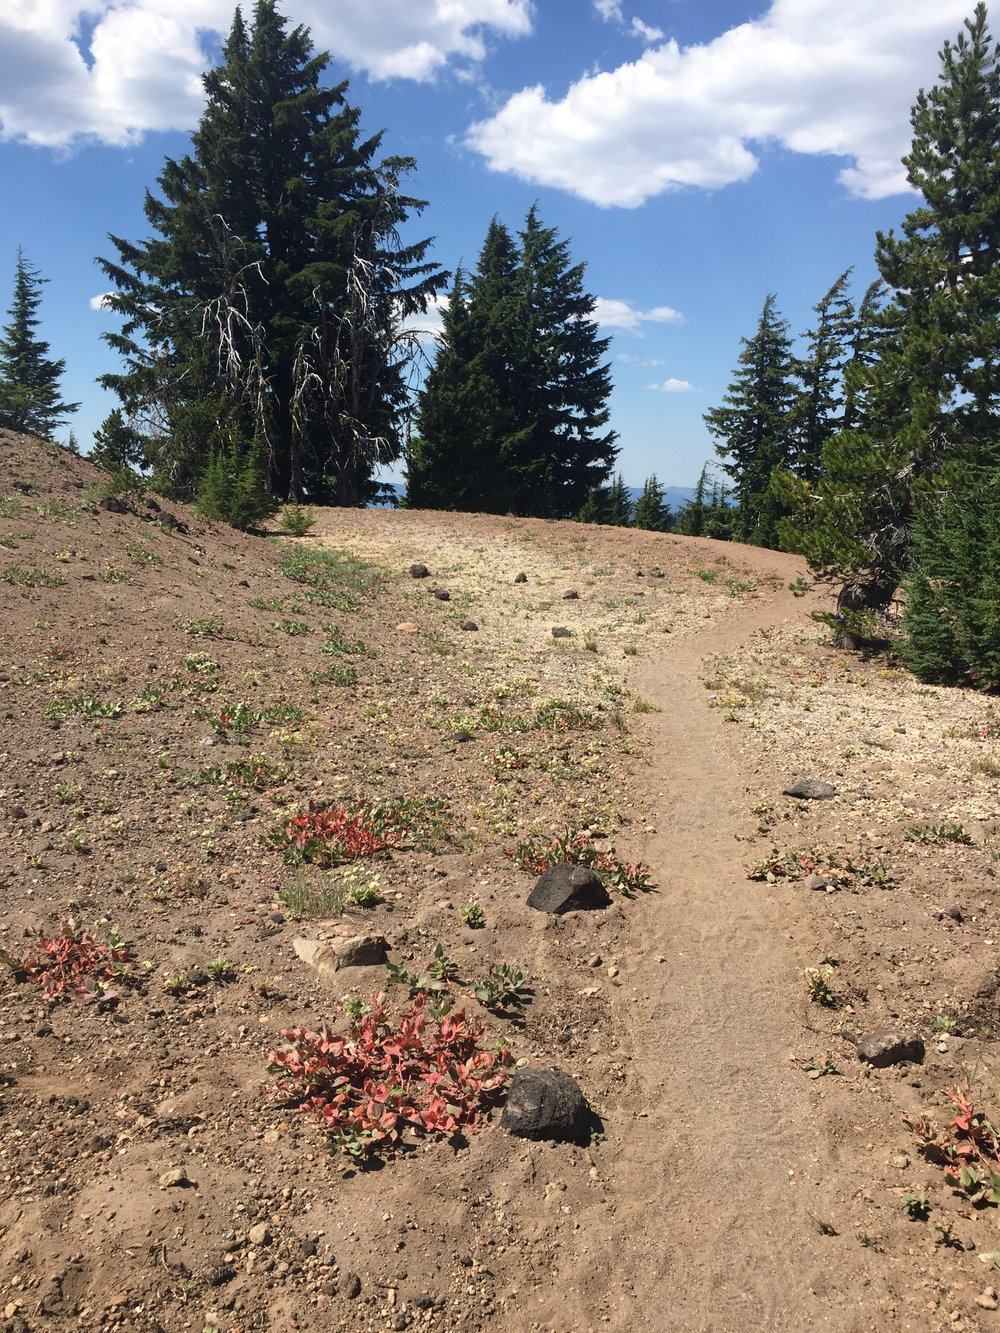 High, dry terrain (& more pumice!) on the northern approach to Crater Lake via the Rim Alternate Trail